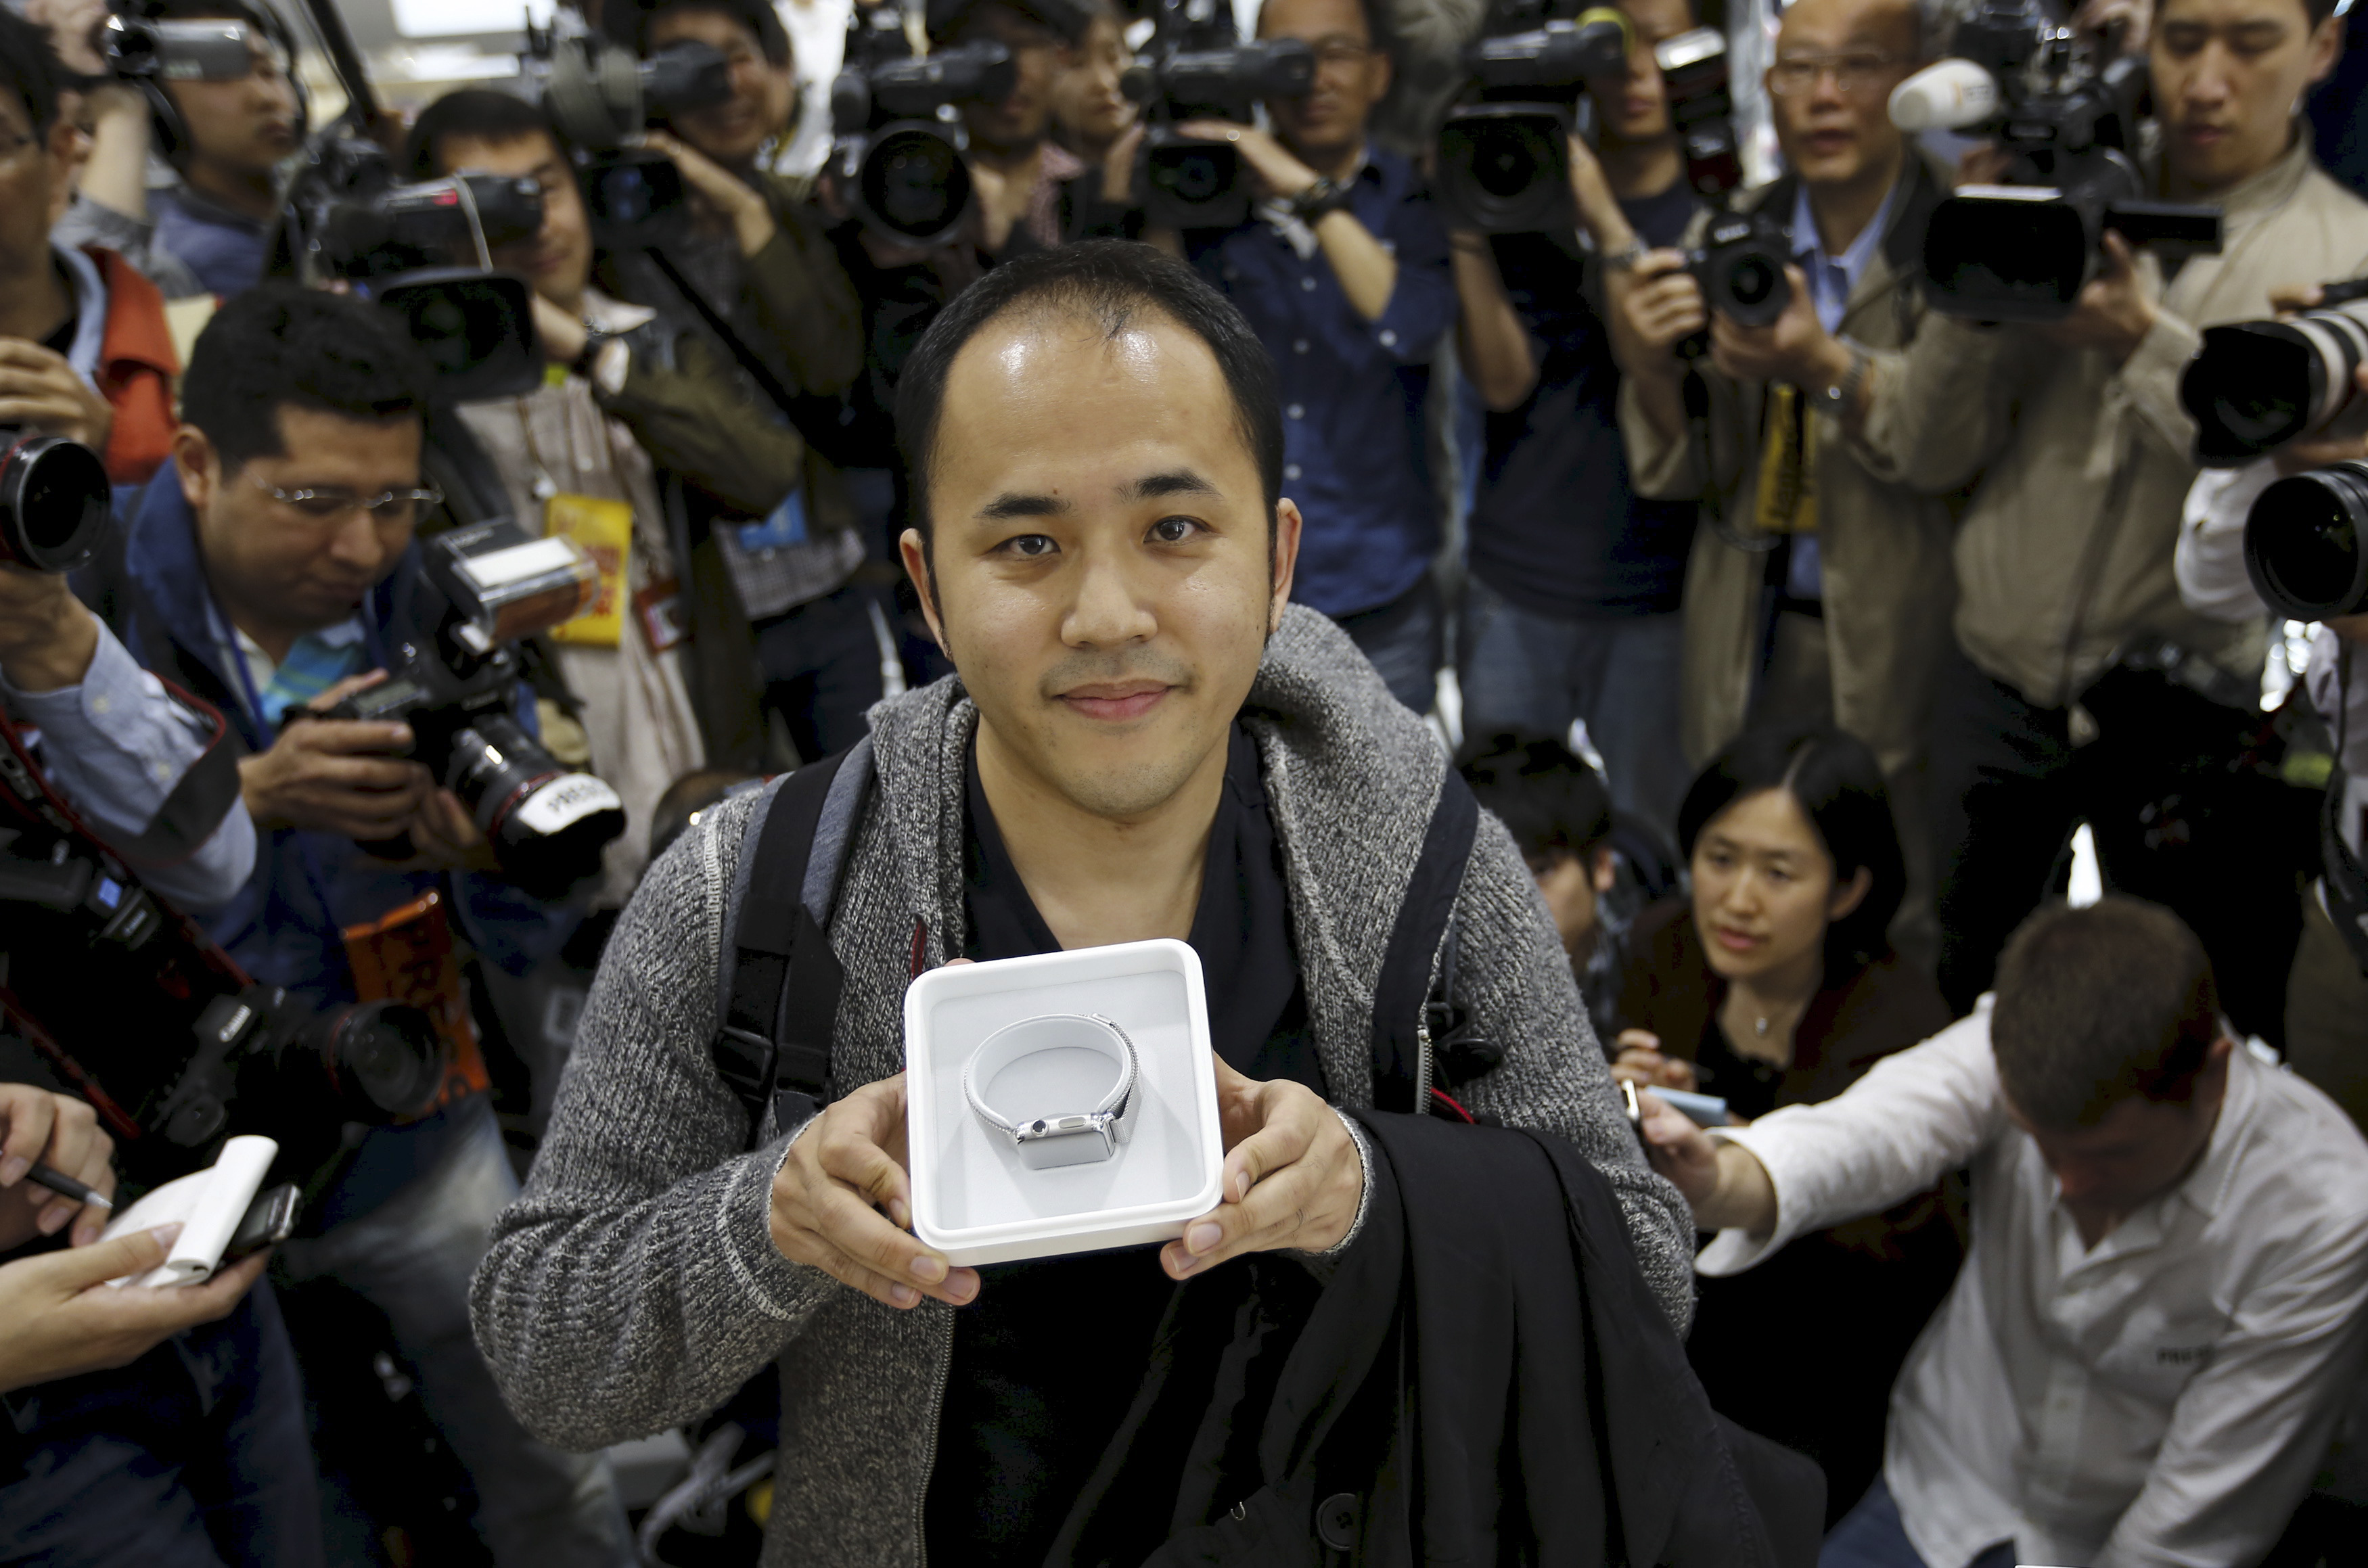 Yuichiro Masui, the first customer to purchase an Apple Watch at an electronics store in Omotasando, poses with his watch in Tokyo April 24, 2015.